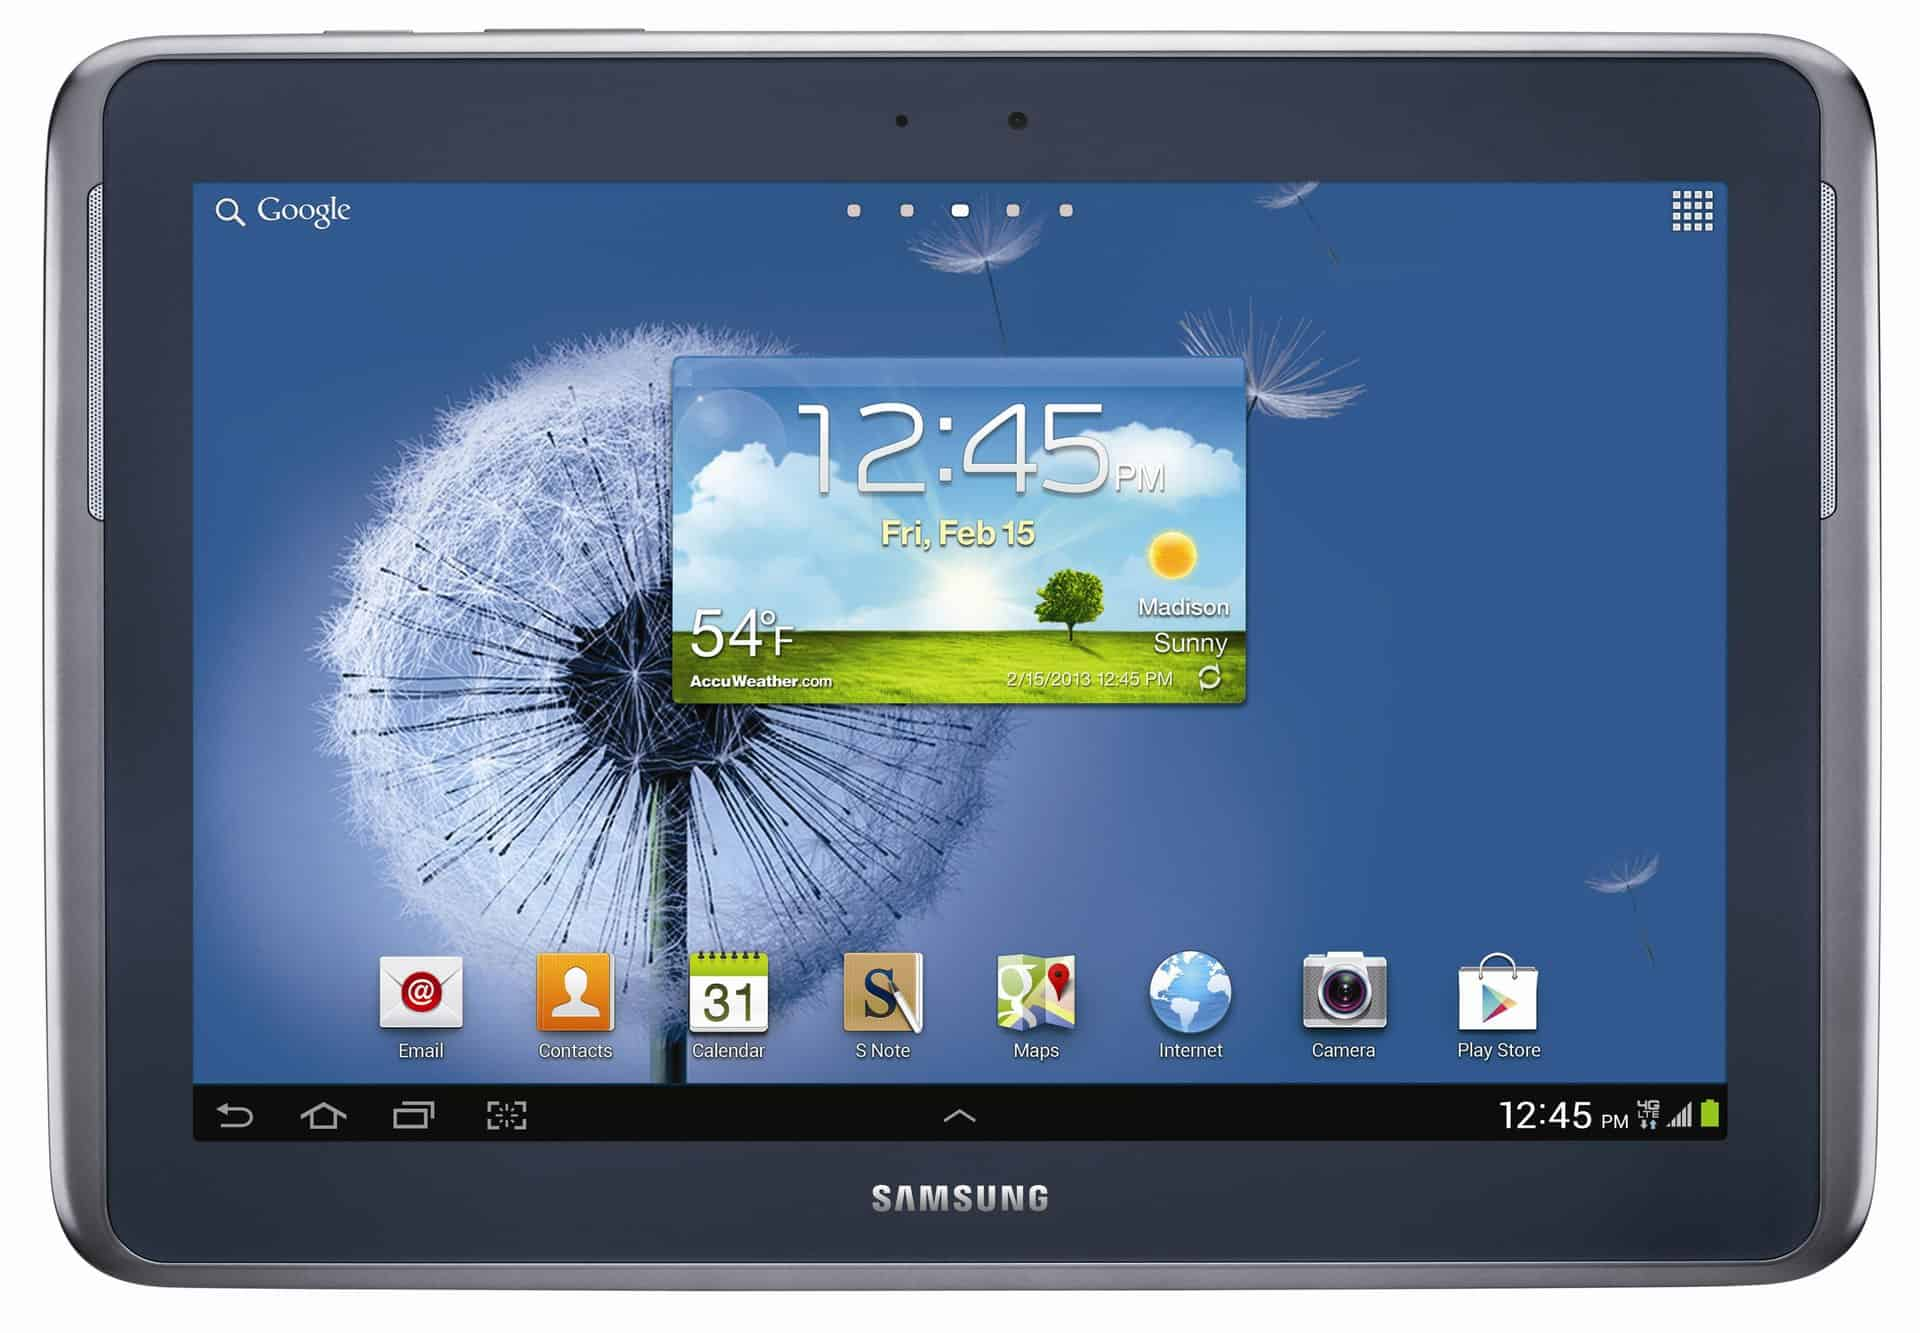 Samsung Galaxy Tab - How to do an underscore